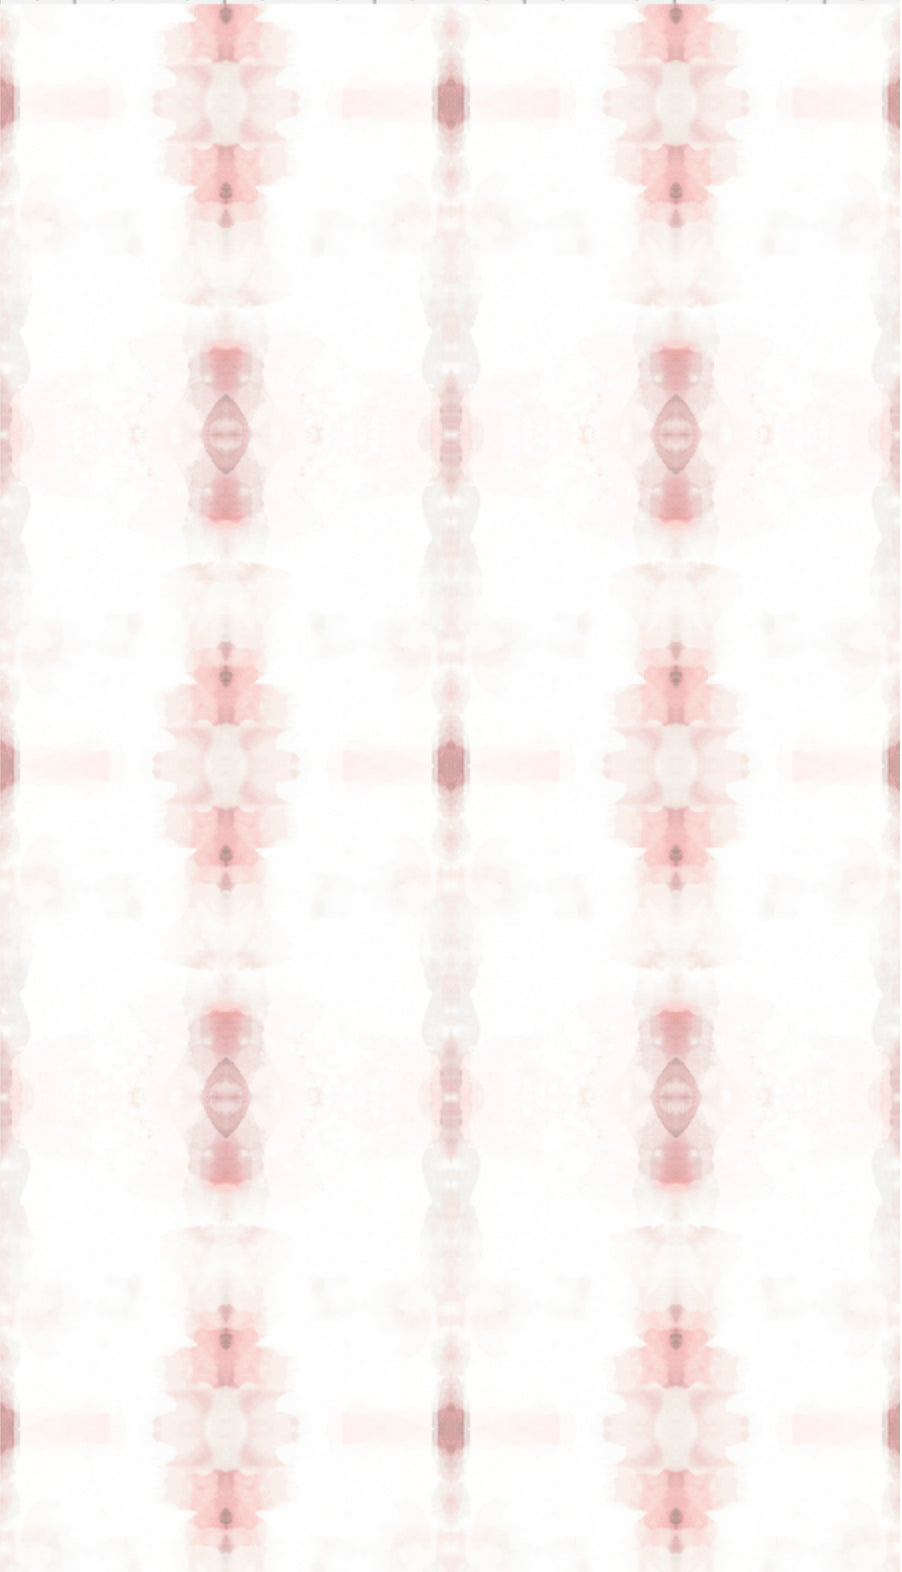 blush wallpaper, hand painted blush wallpaper, wallpaper from painting, blush white wallpaper